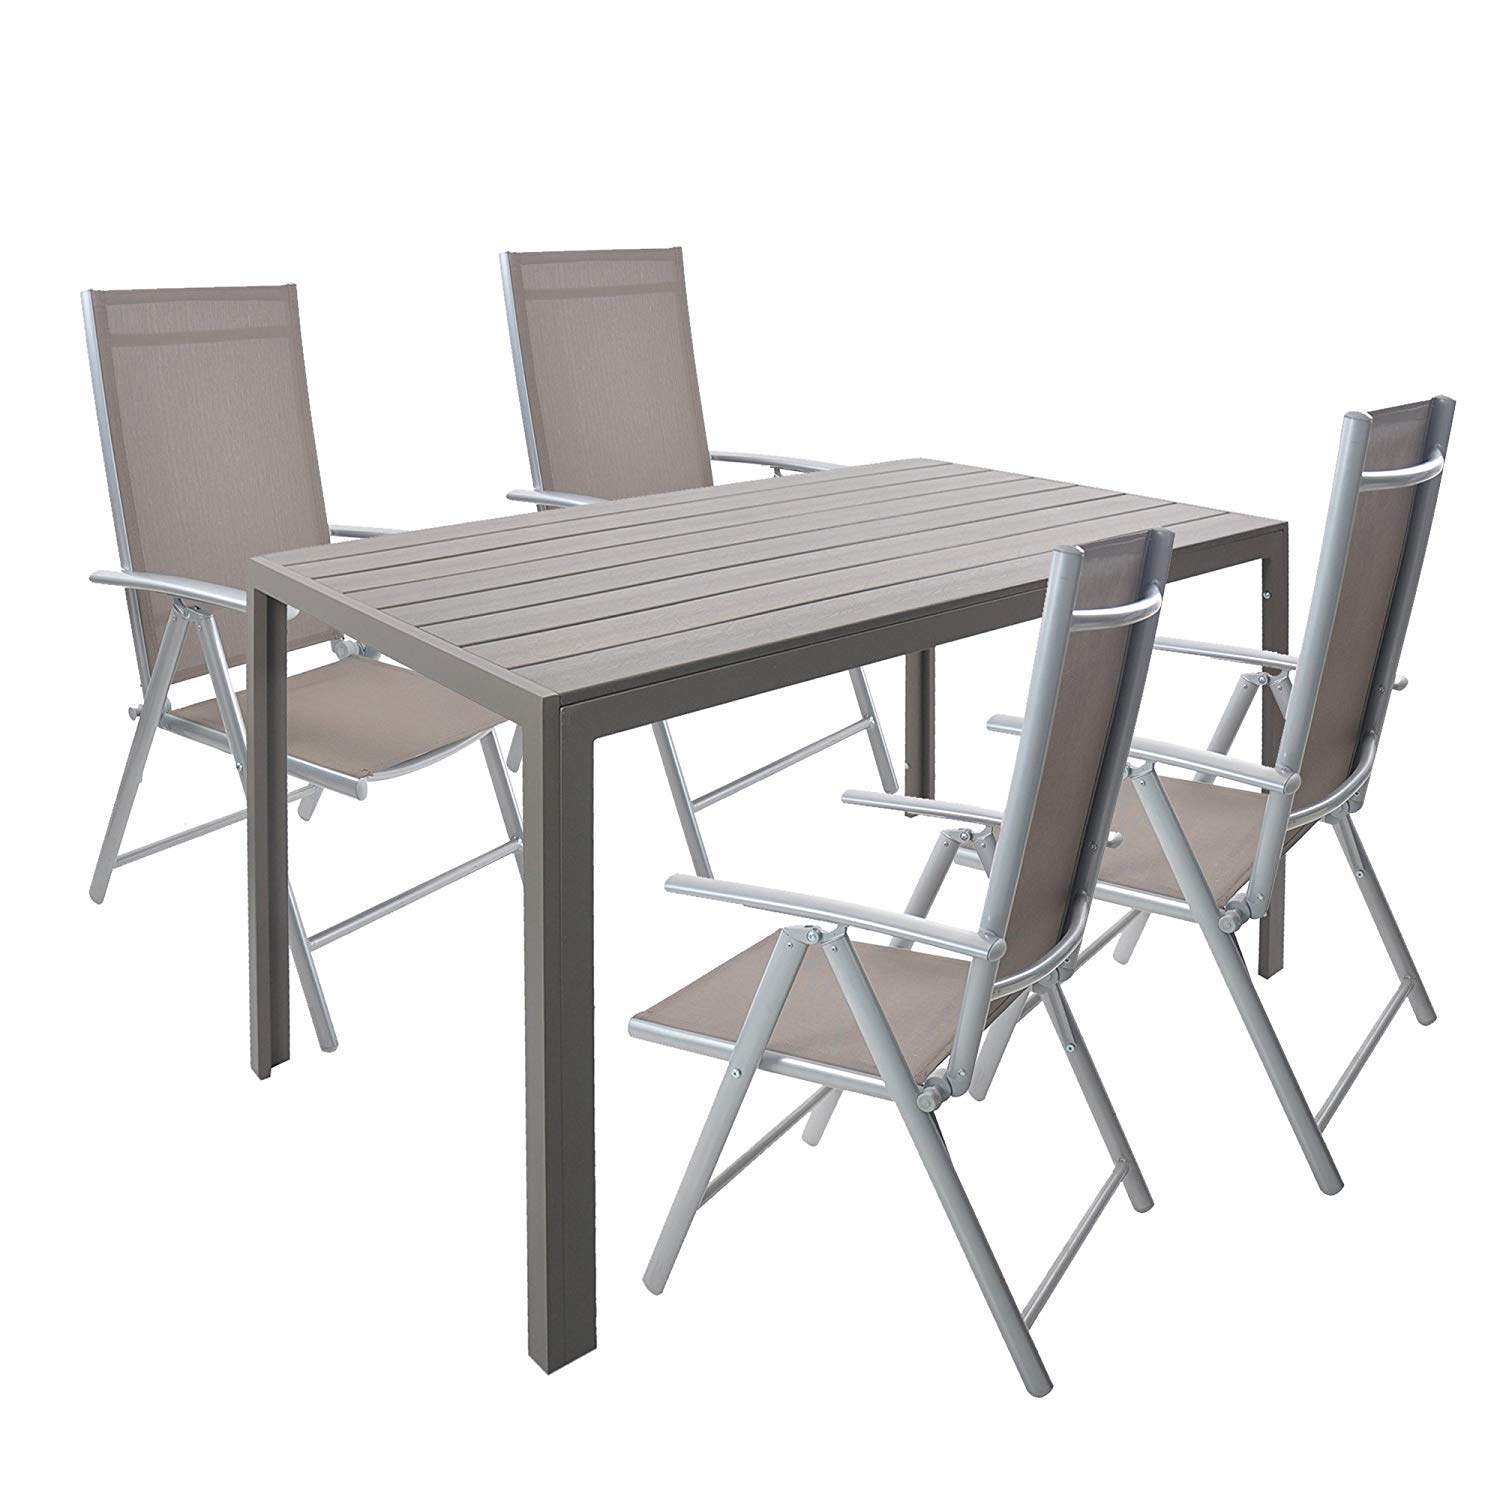 Astounding Amazon Com Karmas Product 5 Piece Aluminum Patio Dining Machost Co Dining Chair Design Ideas Machostcouk